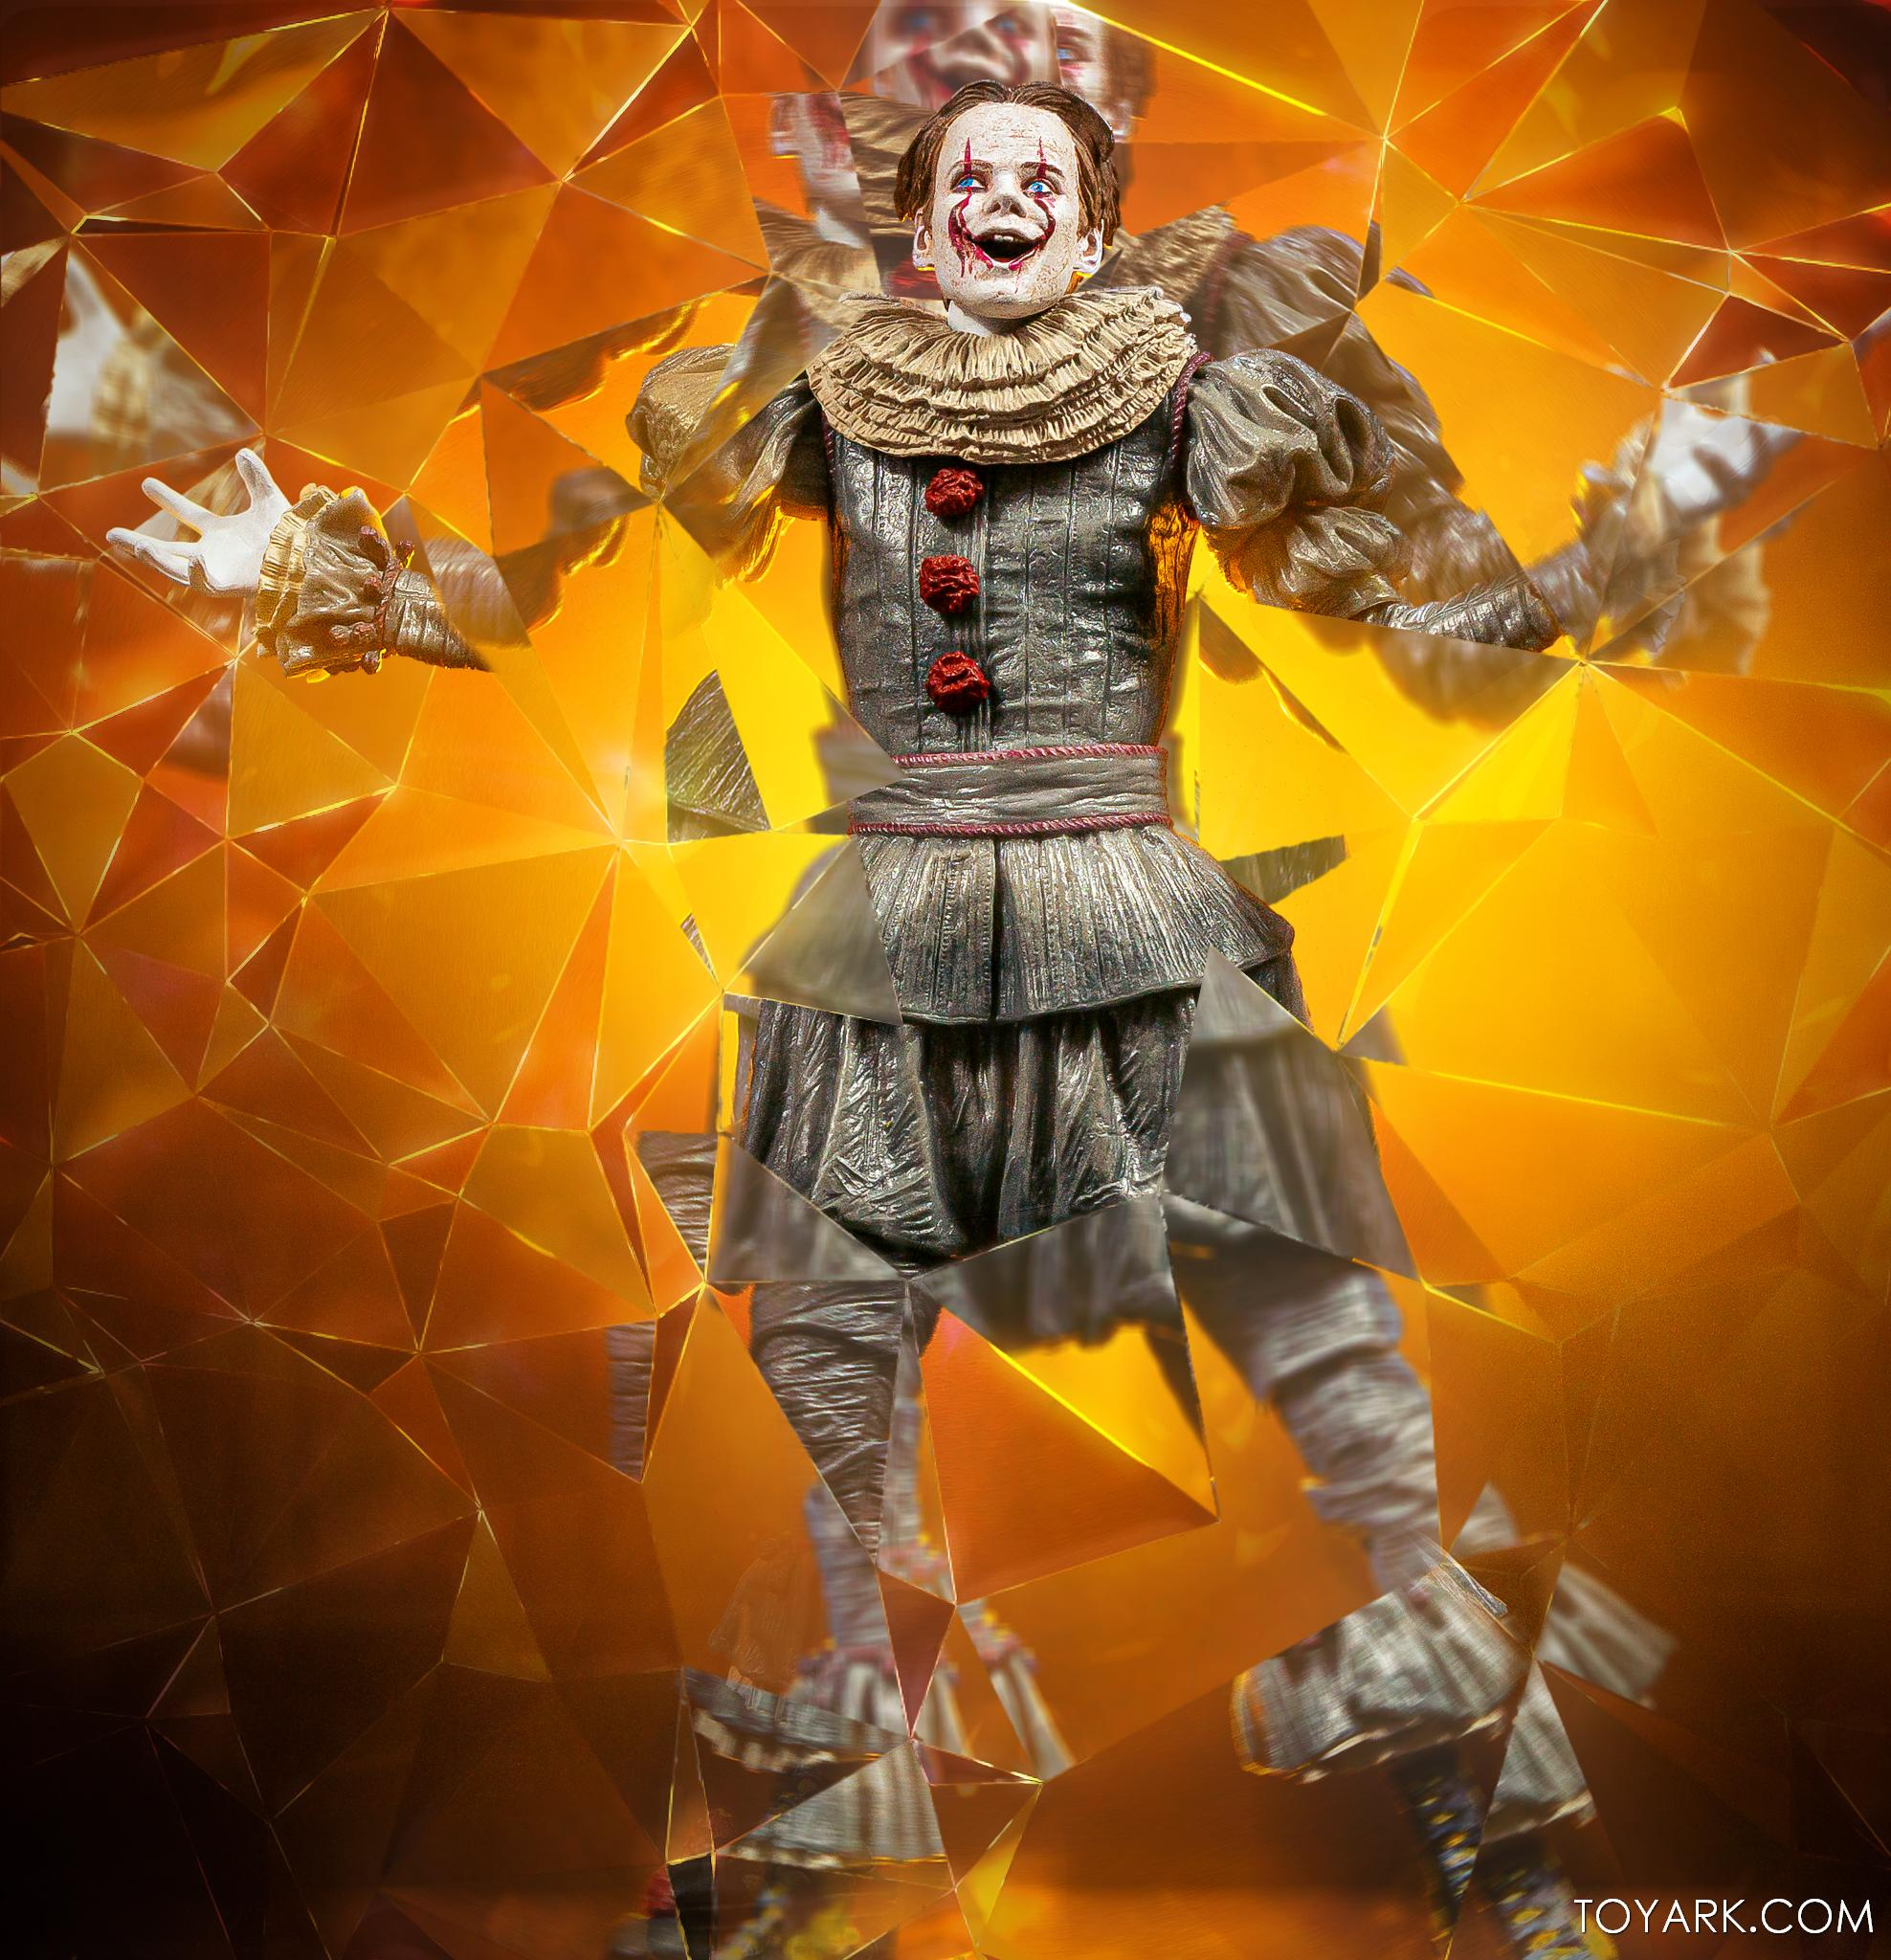 https://news.toyark.com/wp-content/uploads/sites/4/2020/06/NECA-IT-2-Ultimate-Pennywise-039.jpg